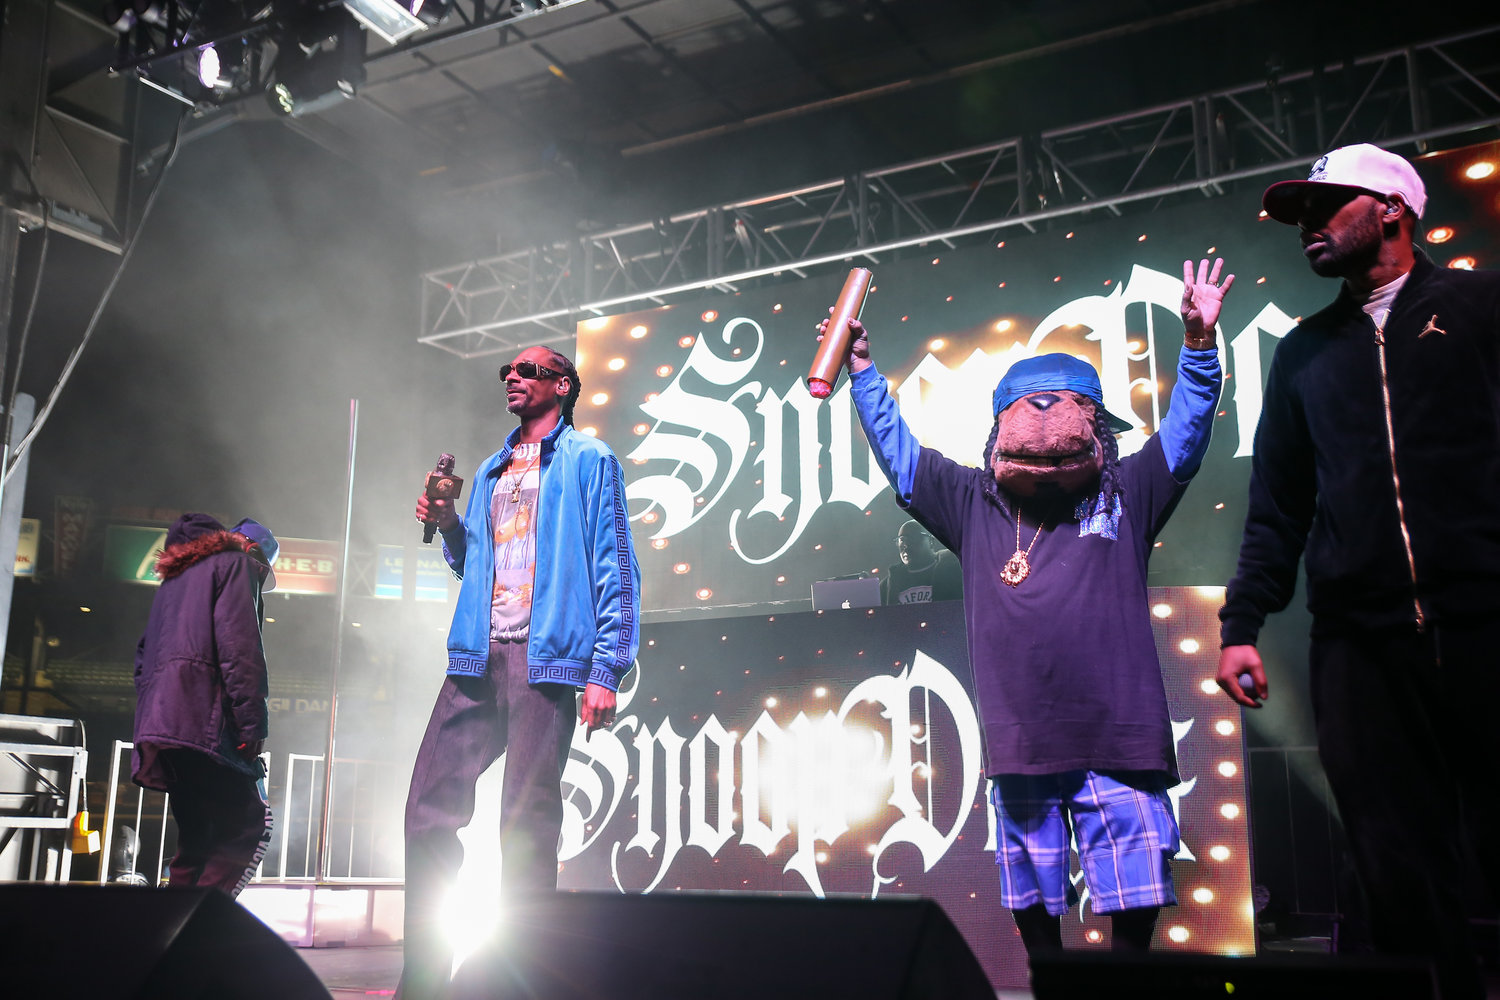 Snoop Dogg performs on the Puff Puff Pass tour on Sunday, Dec. 2, 2018 in Round Rock, TX.